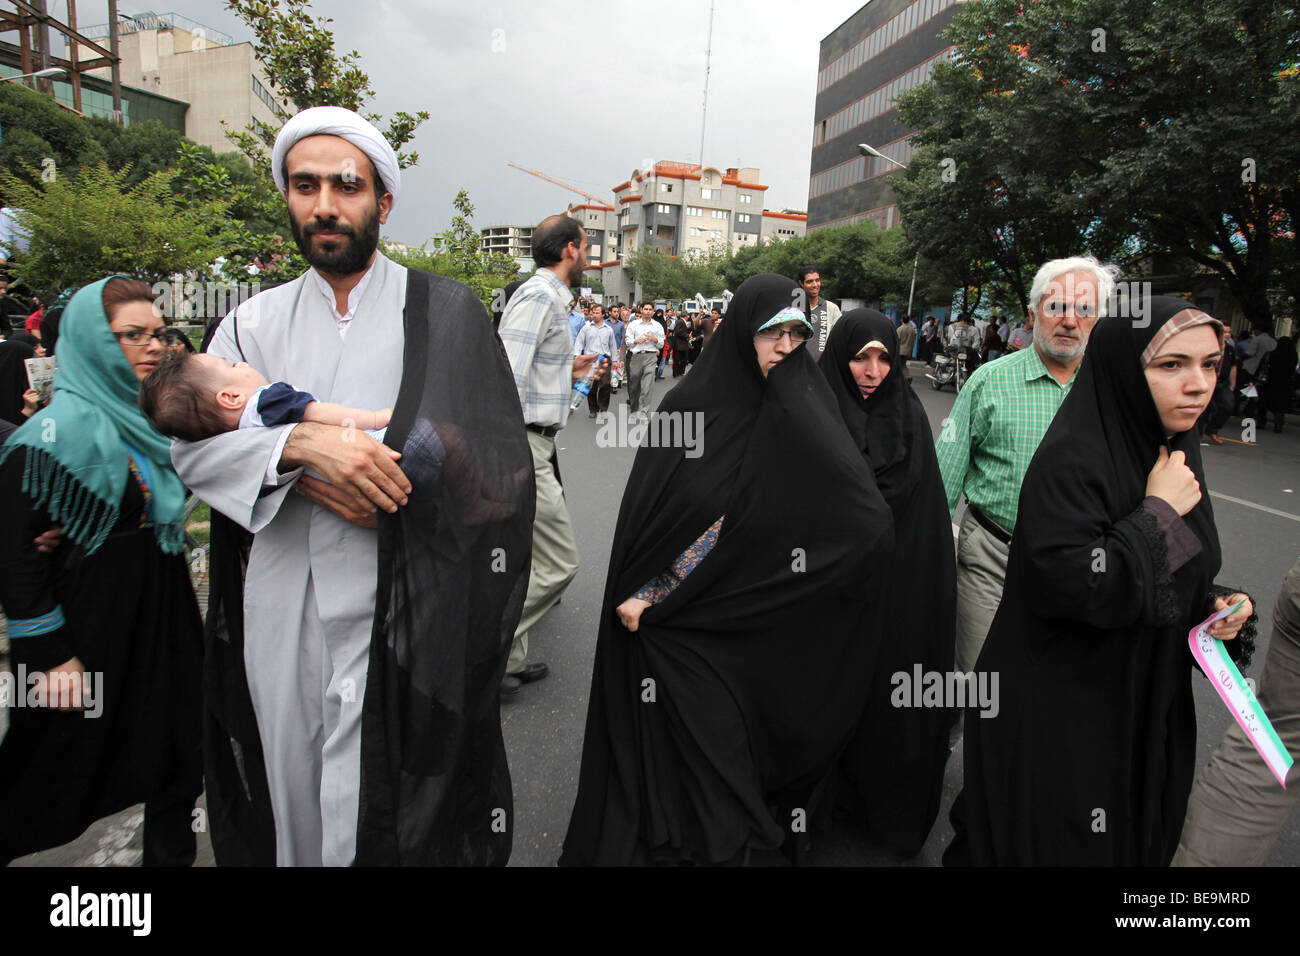 Iran, Teheran: Demonstration of supporters of Iranian President Mahmoud Ahmadinejad (2009/06/14) - Stock Image